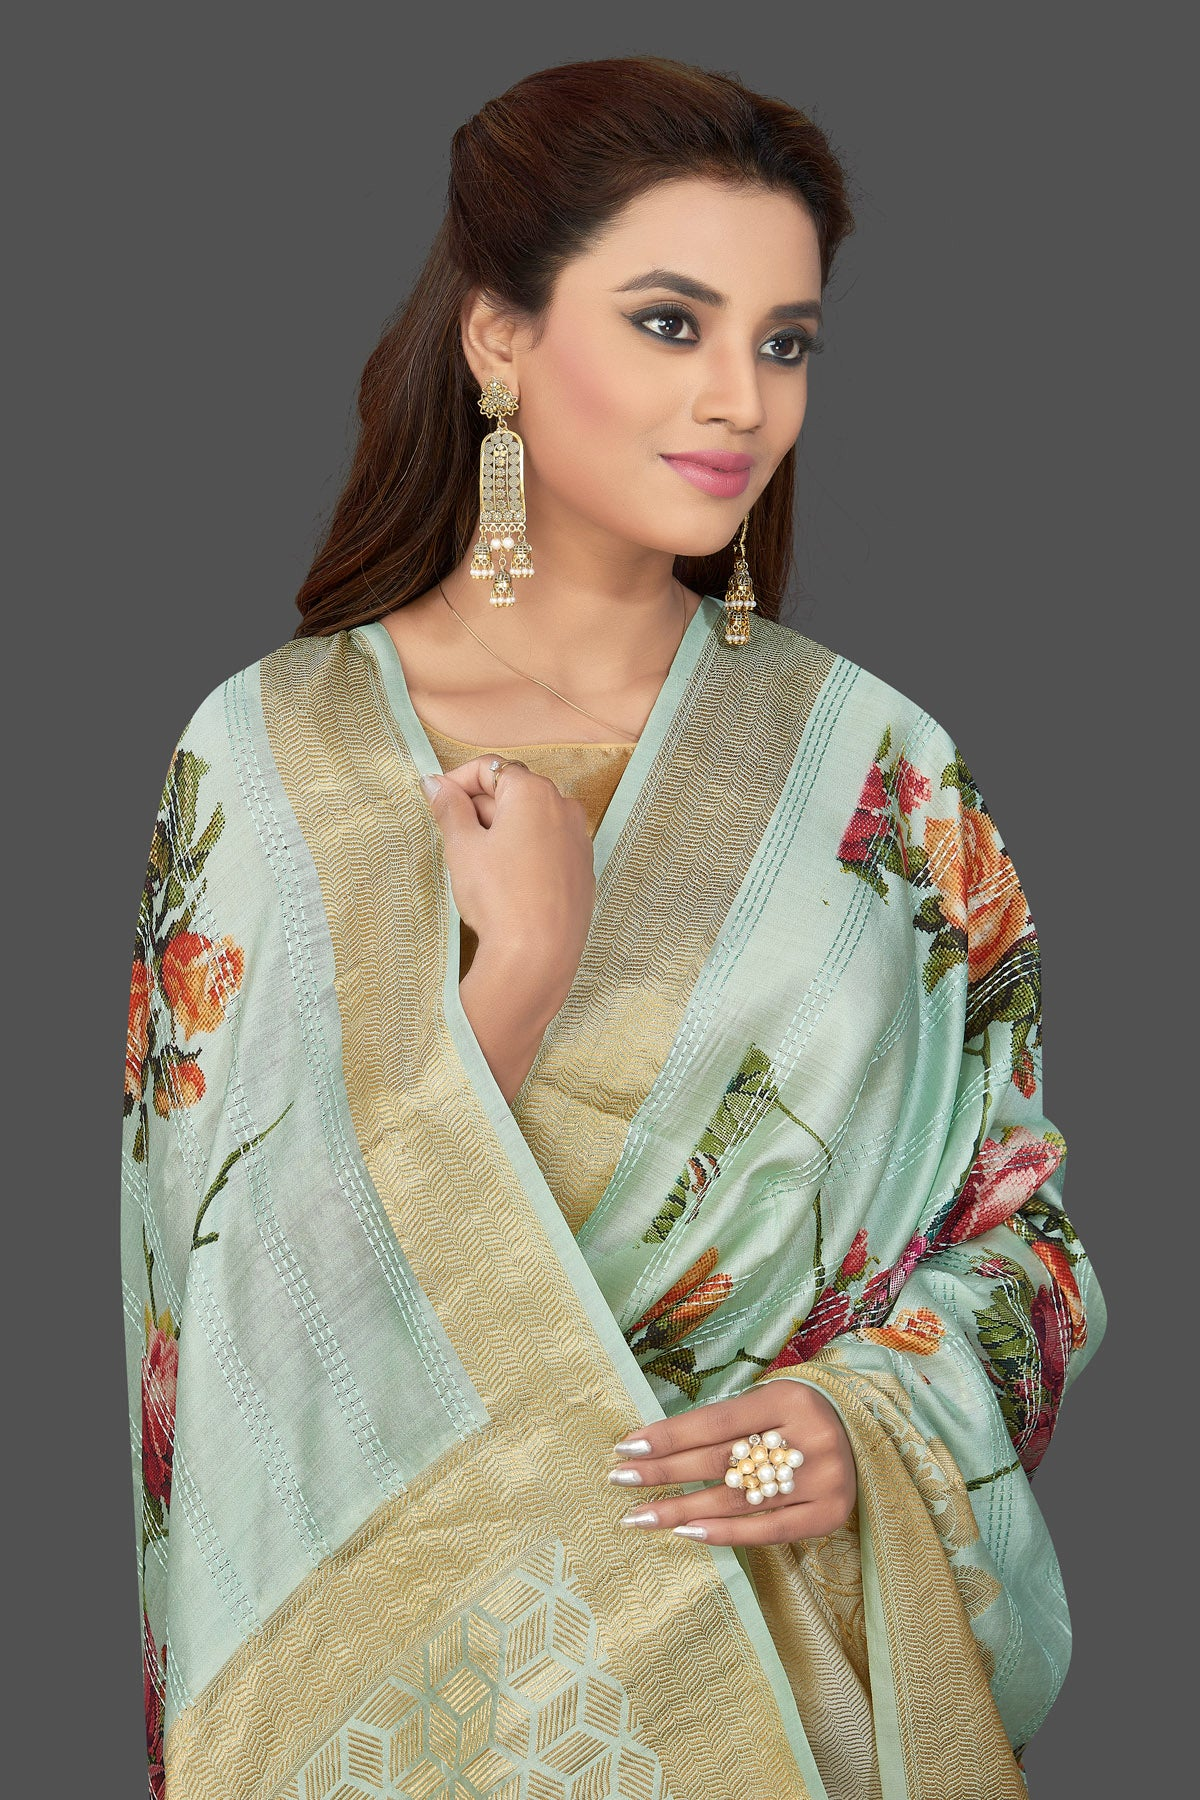 Buy beautiful mint green floral print muga silk saree online in USA with golden zari border. Make you presence felt with your Indian style on special occasions in beautiful designer sarees, handwoven sarees, tussar sarees, muga silk sarees from Pure Elegance Indian fashion store in USA.-closeup